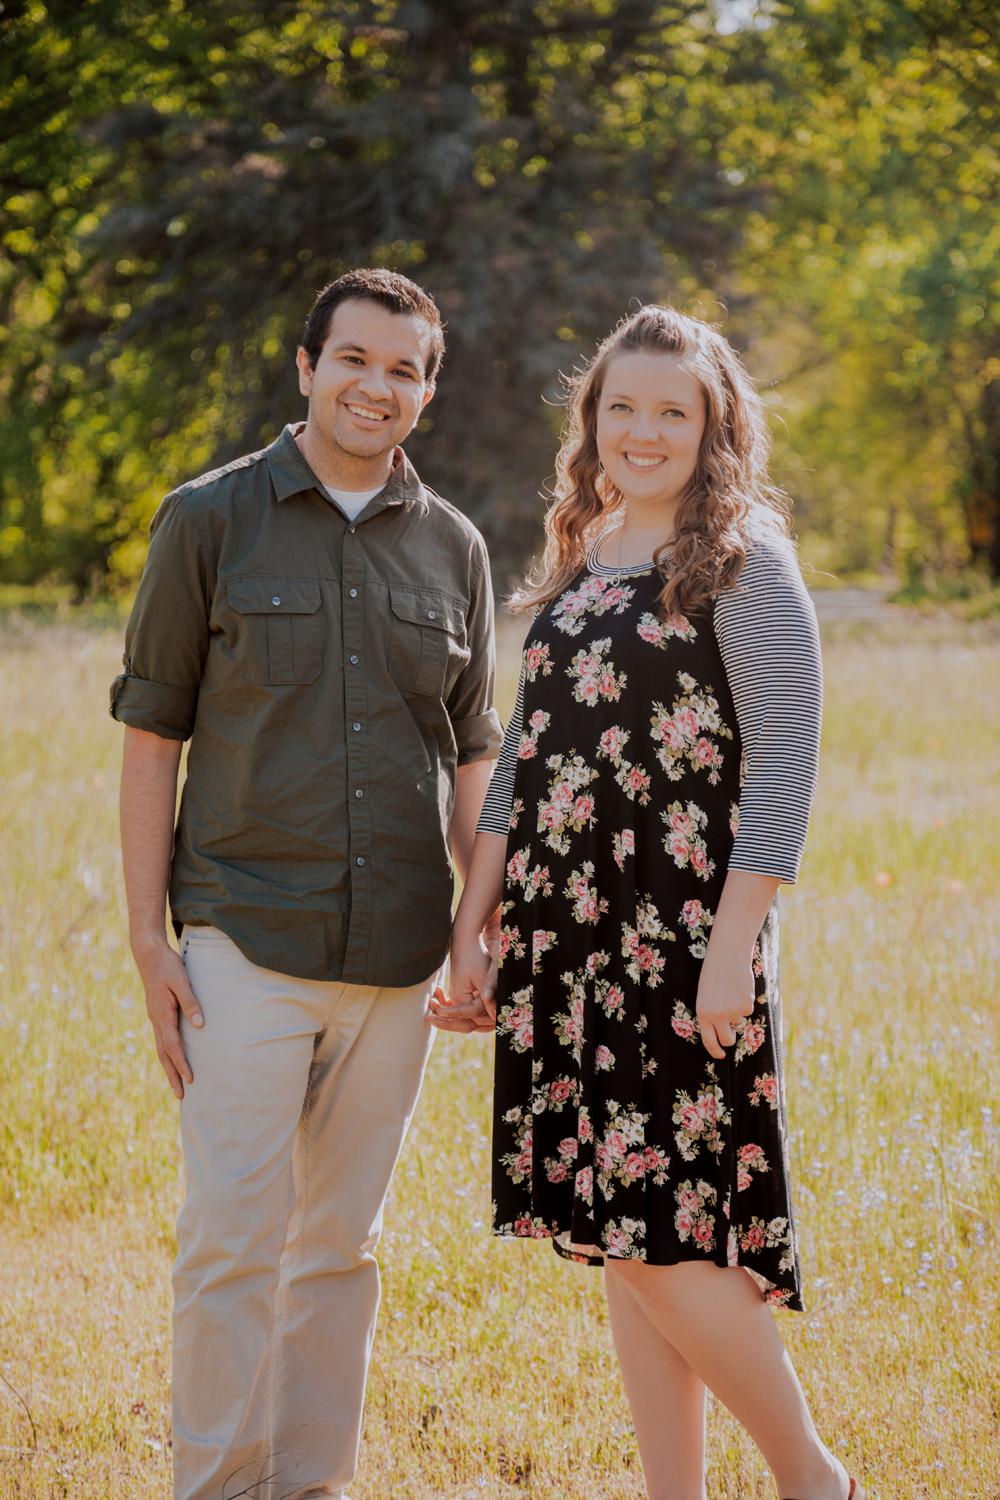 Upper-Bidwell-Chico-Engagement-Photographer20.jpg